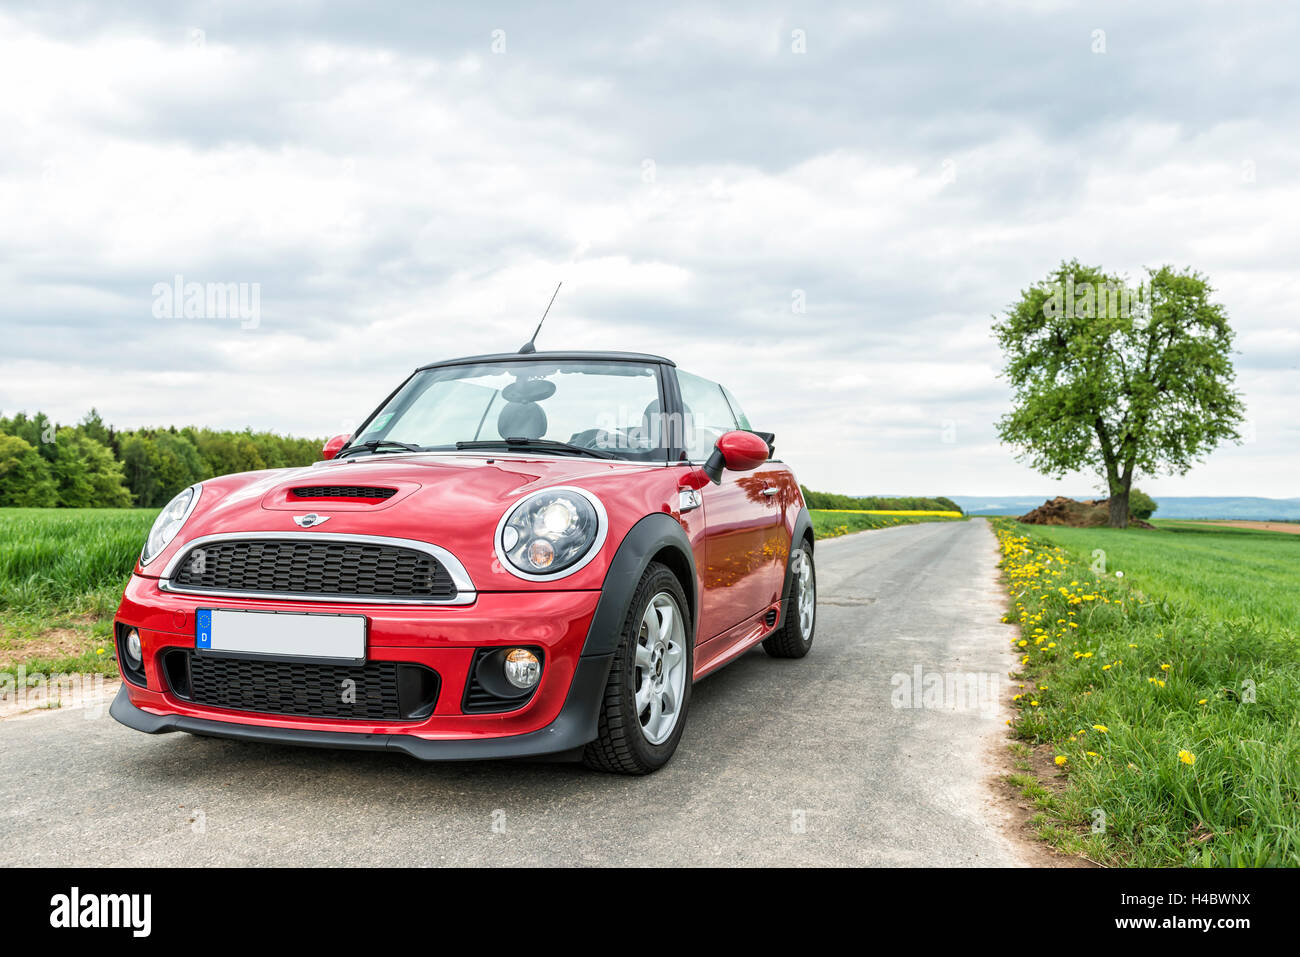 Breuberg, Hesse, Germany, Mini Cooper S convertible, year of manufacture 2015, - Stock Image